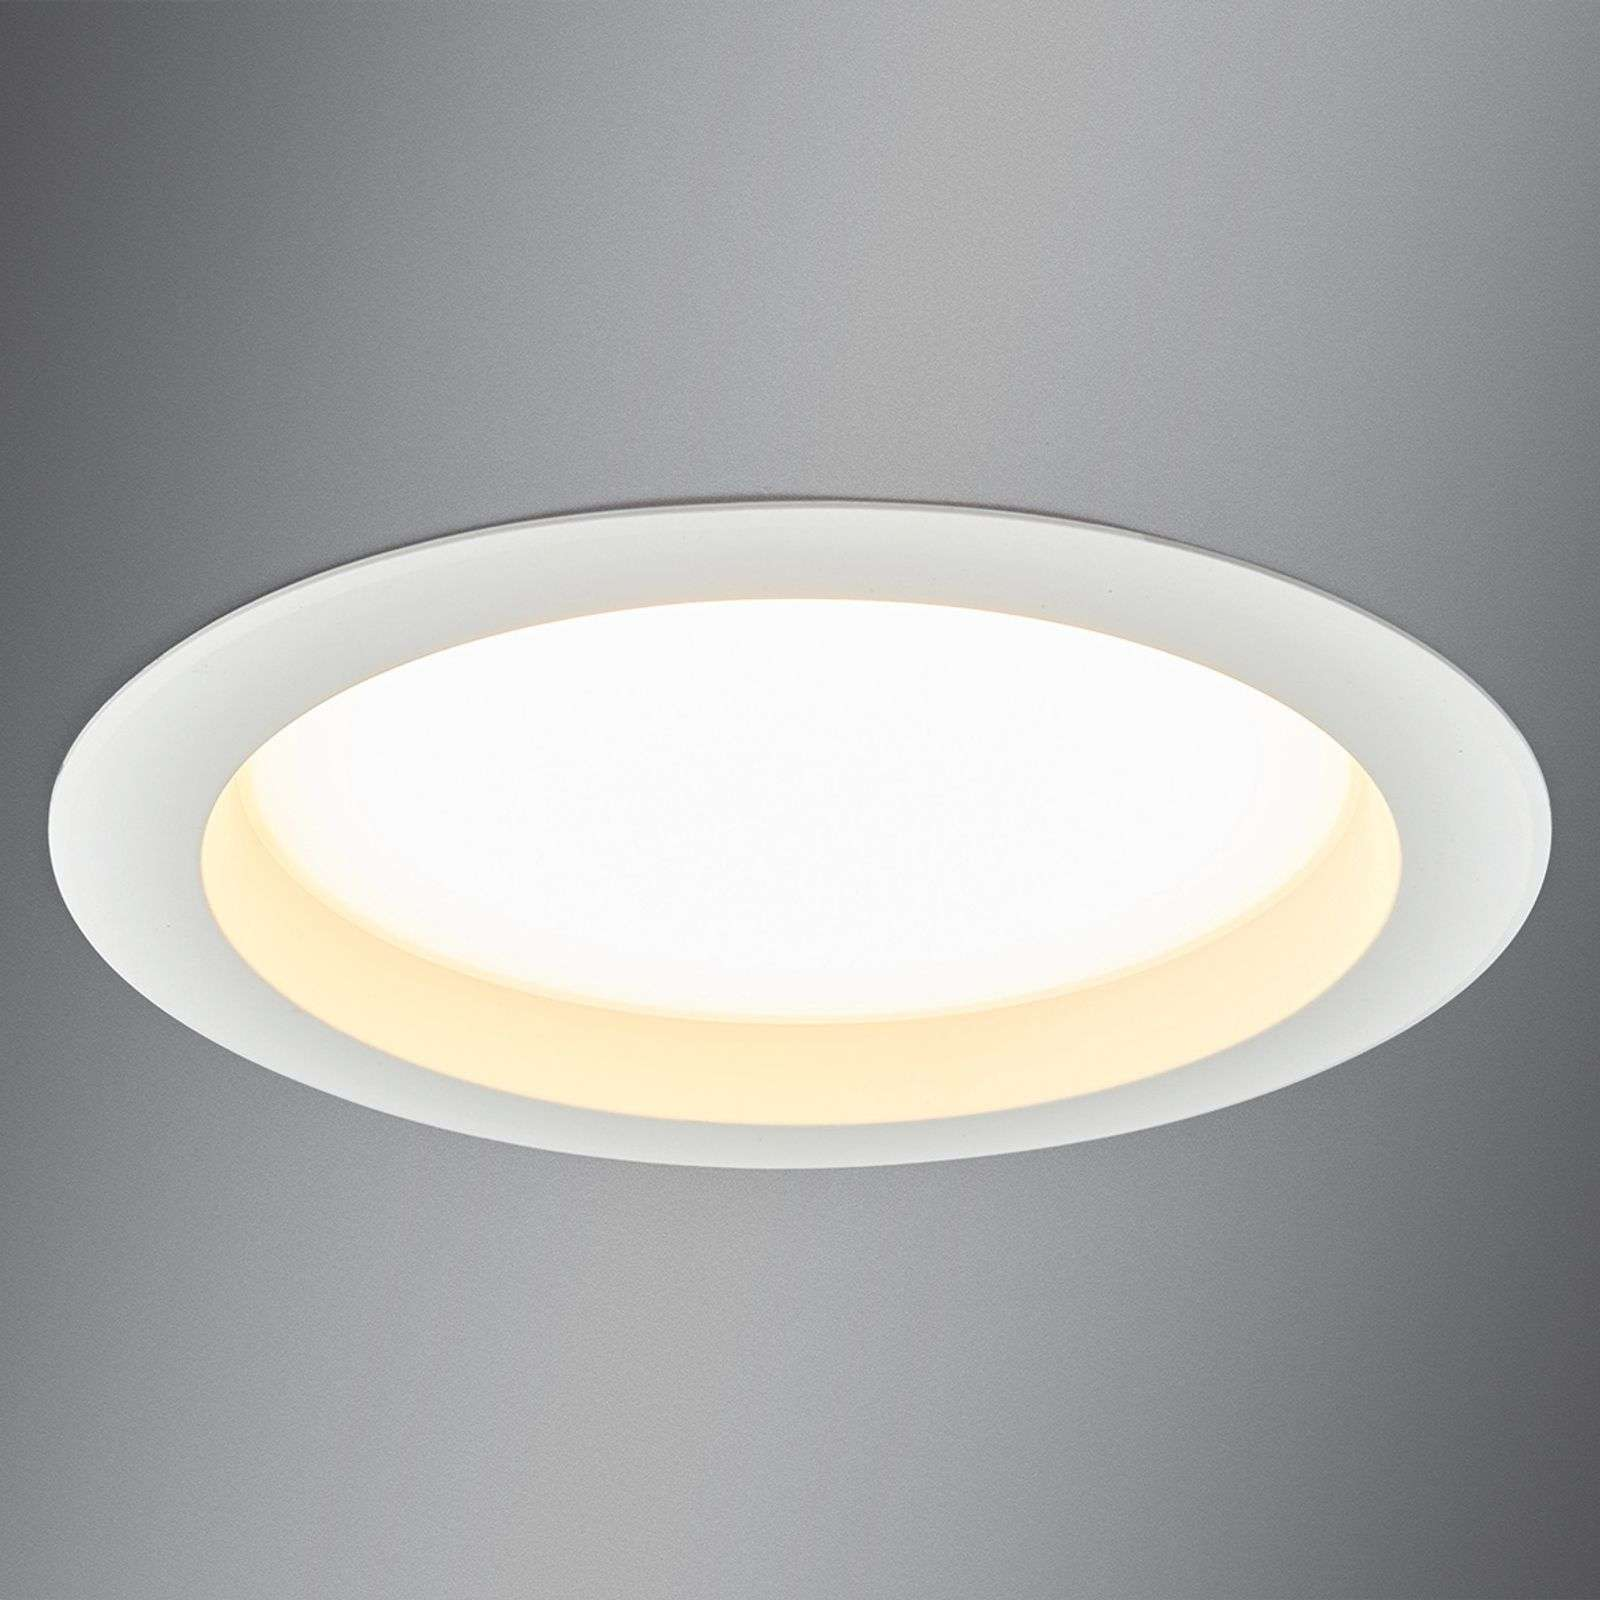 Grand spot encastrable LED Arian, 24,4 cm, 22,5 W